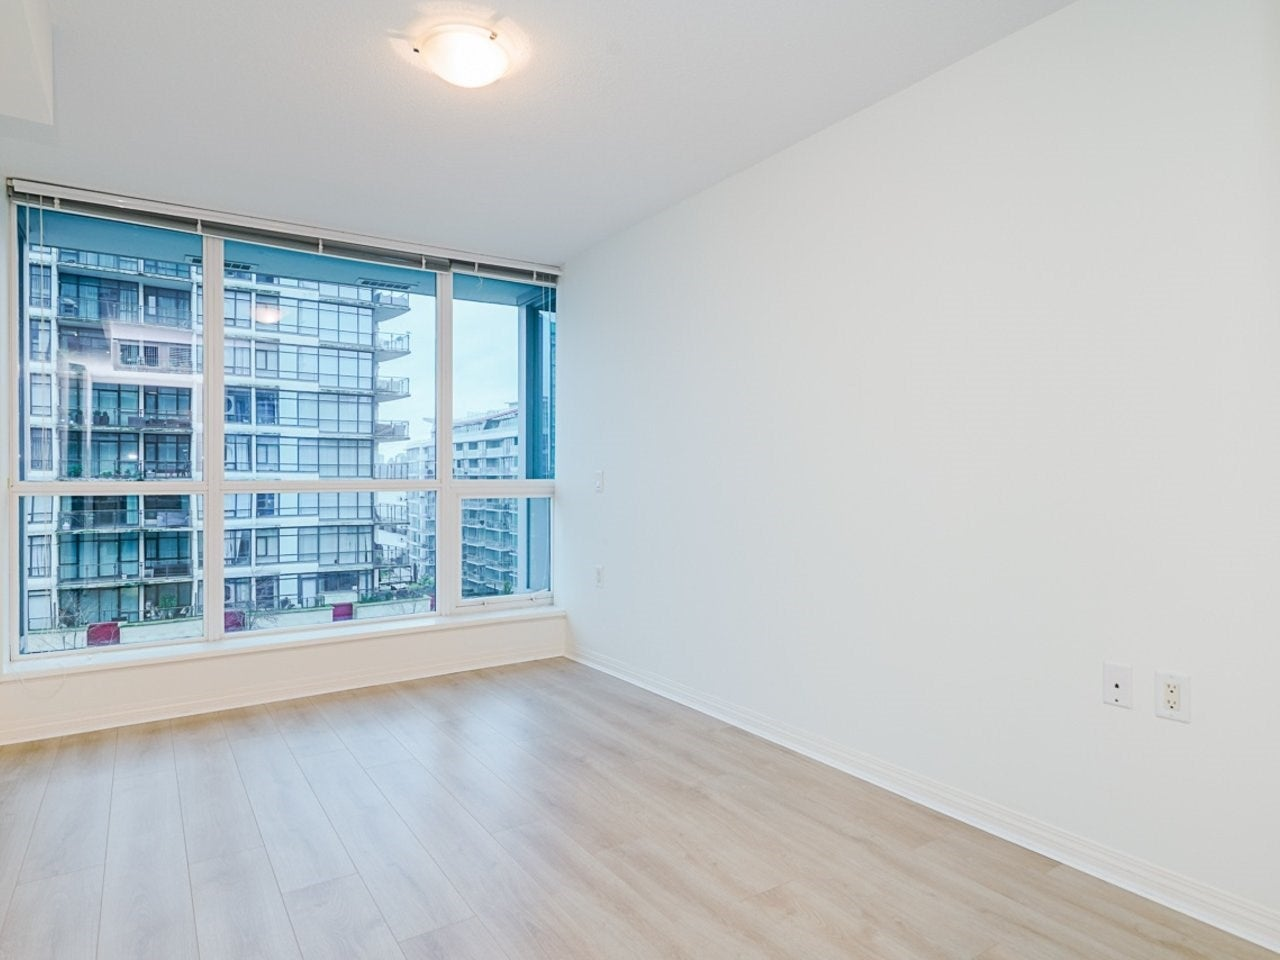 604 188 E ESPLANADE - Lower Lonsdale Apartment/Condo for sale, 2 Bedrooms (R2528391) - #24